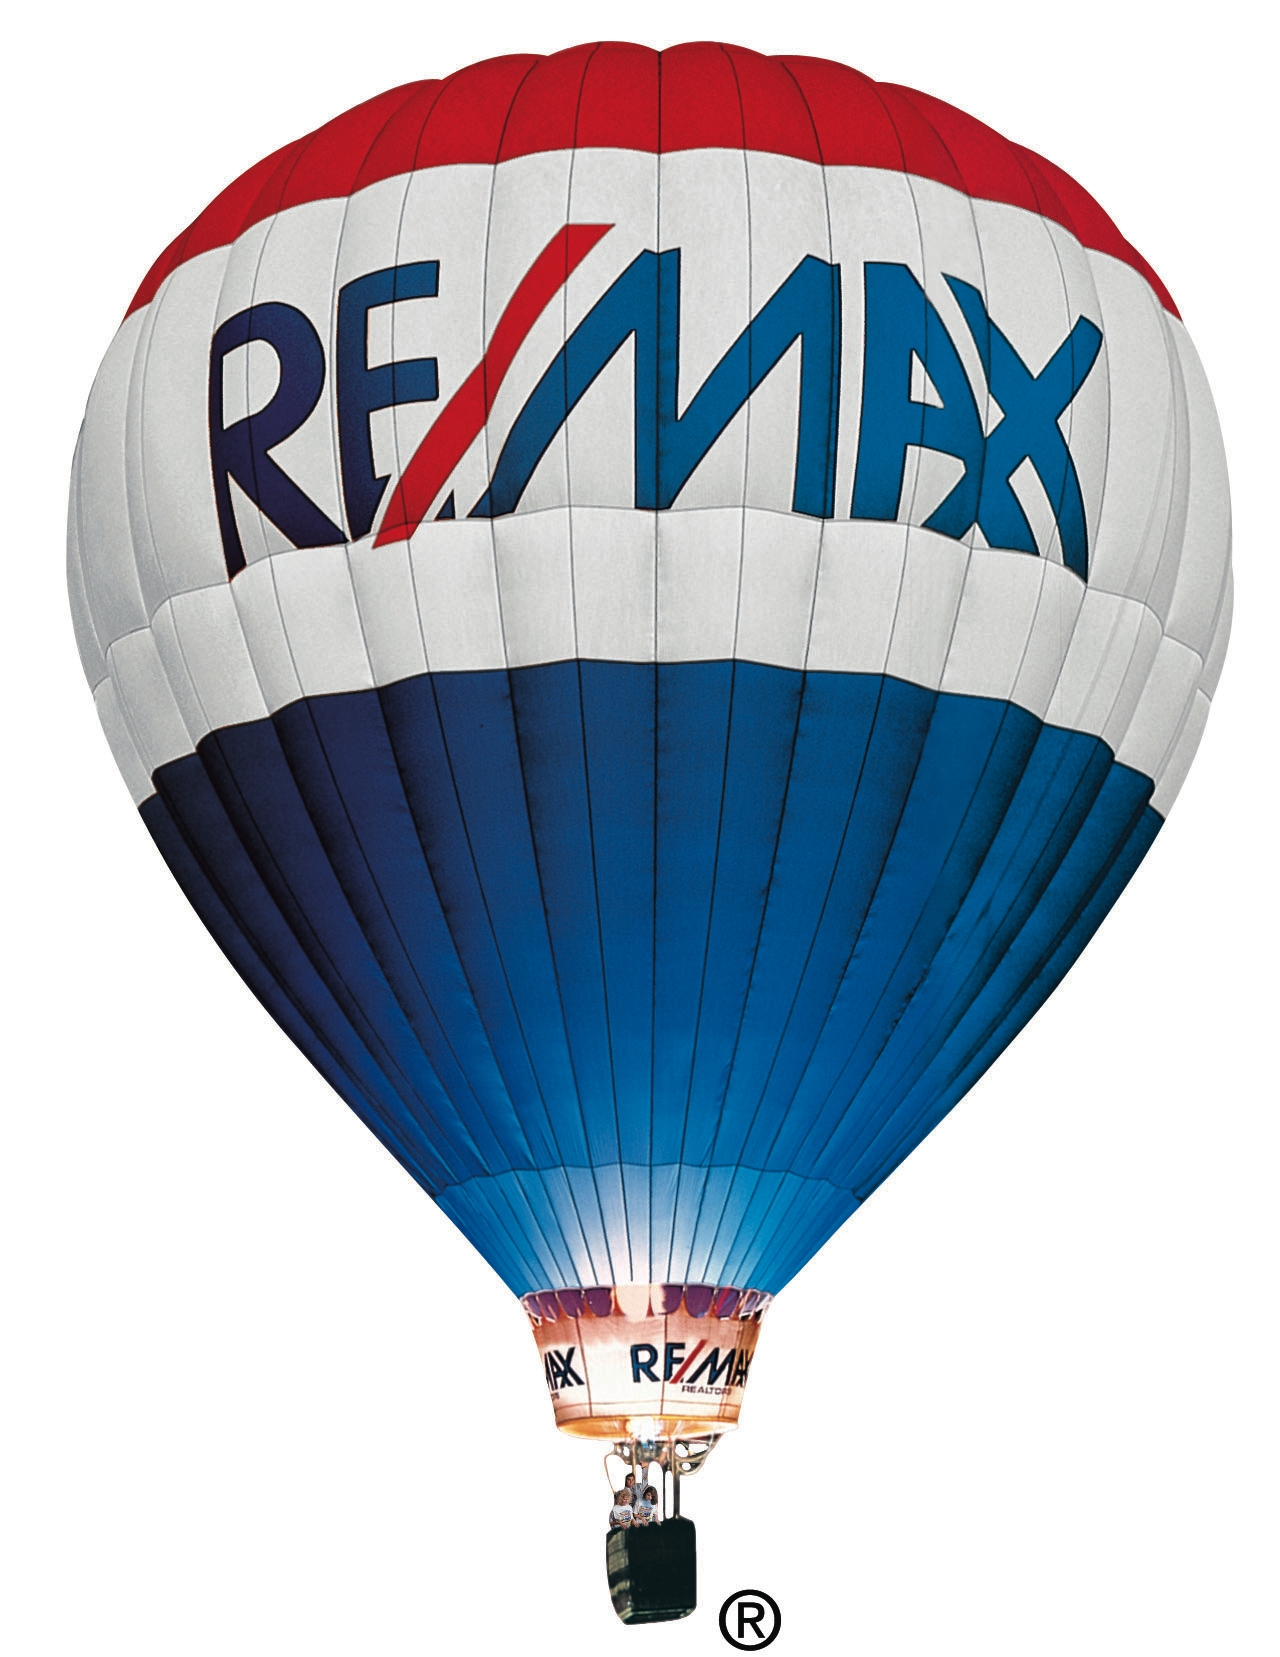 REMAX - East Shore The Woodlands